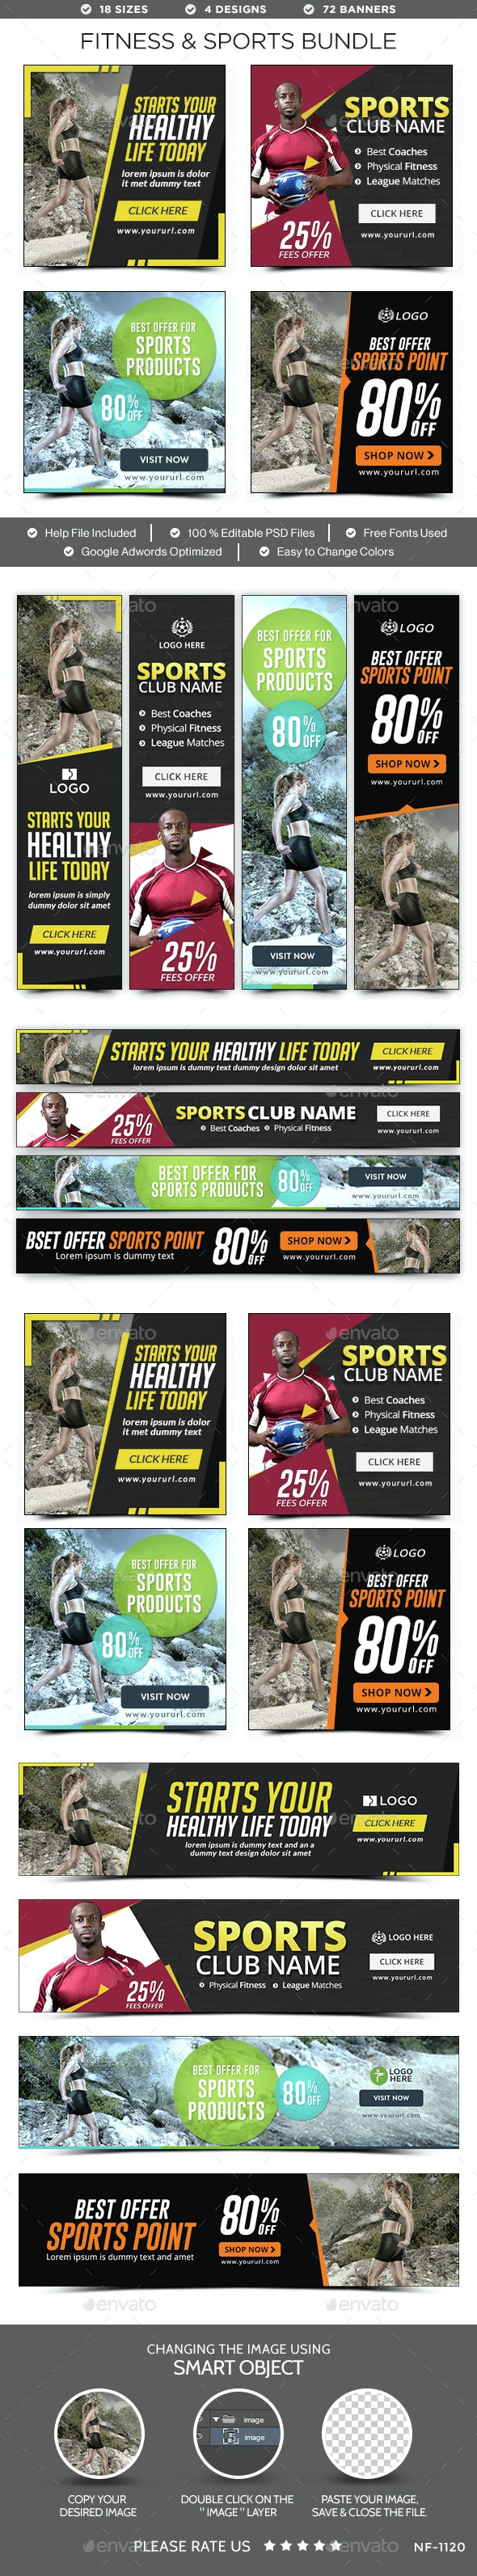 Fitness & Sports Banners Bundle - 4 Sets - 72 Banners - Banners & Ads Web Elements